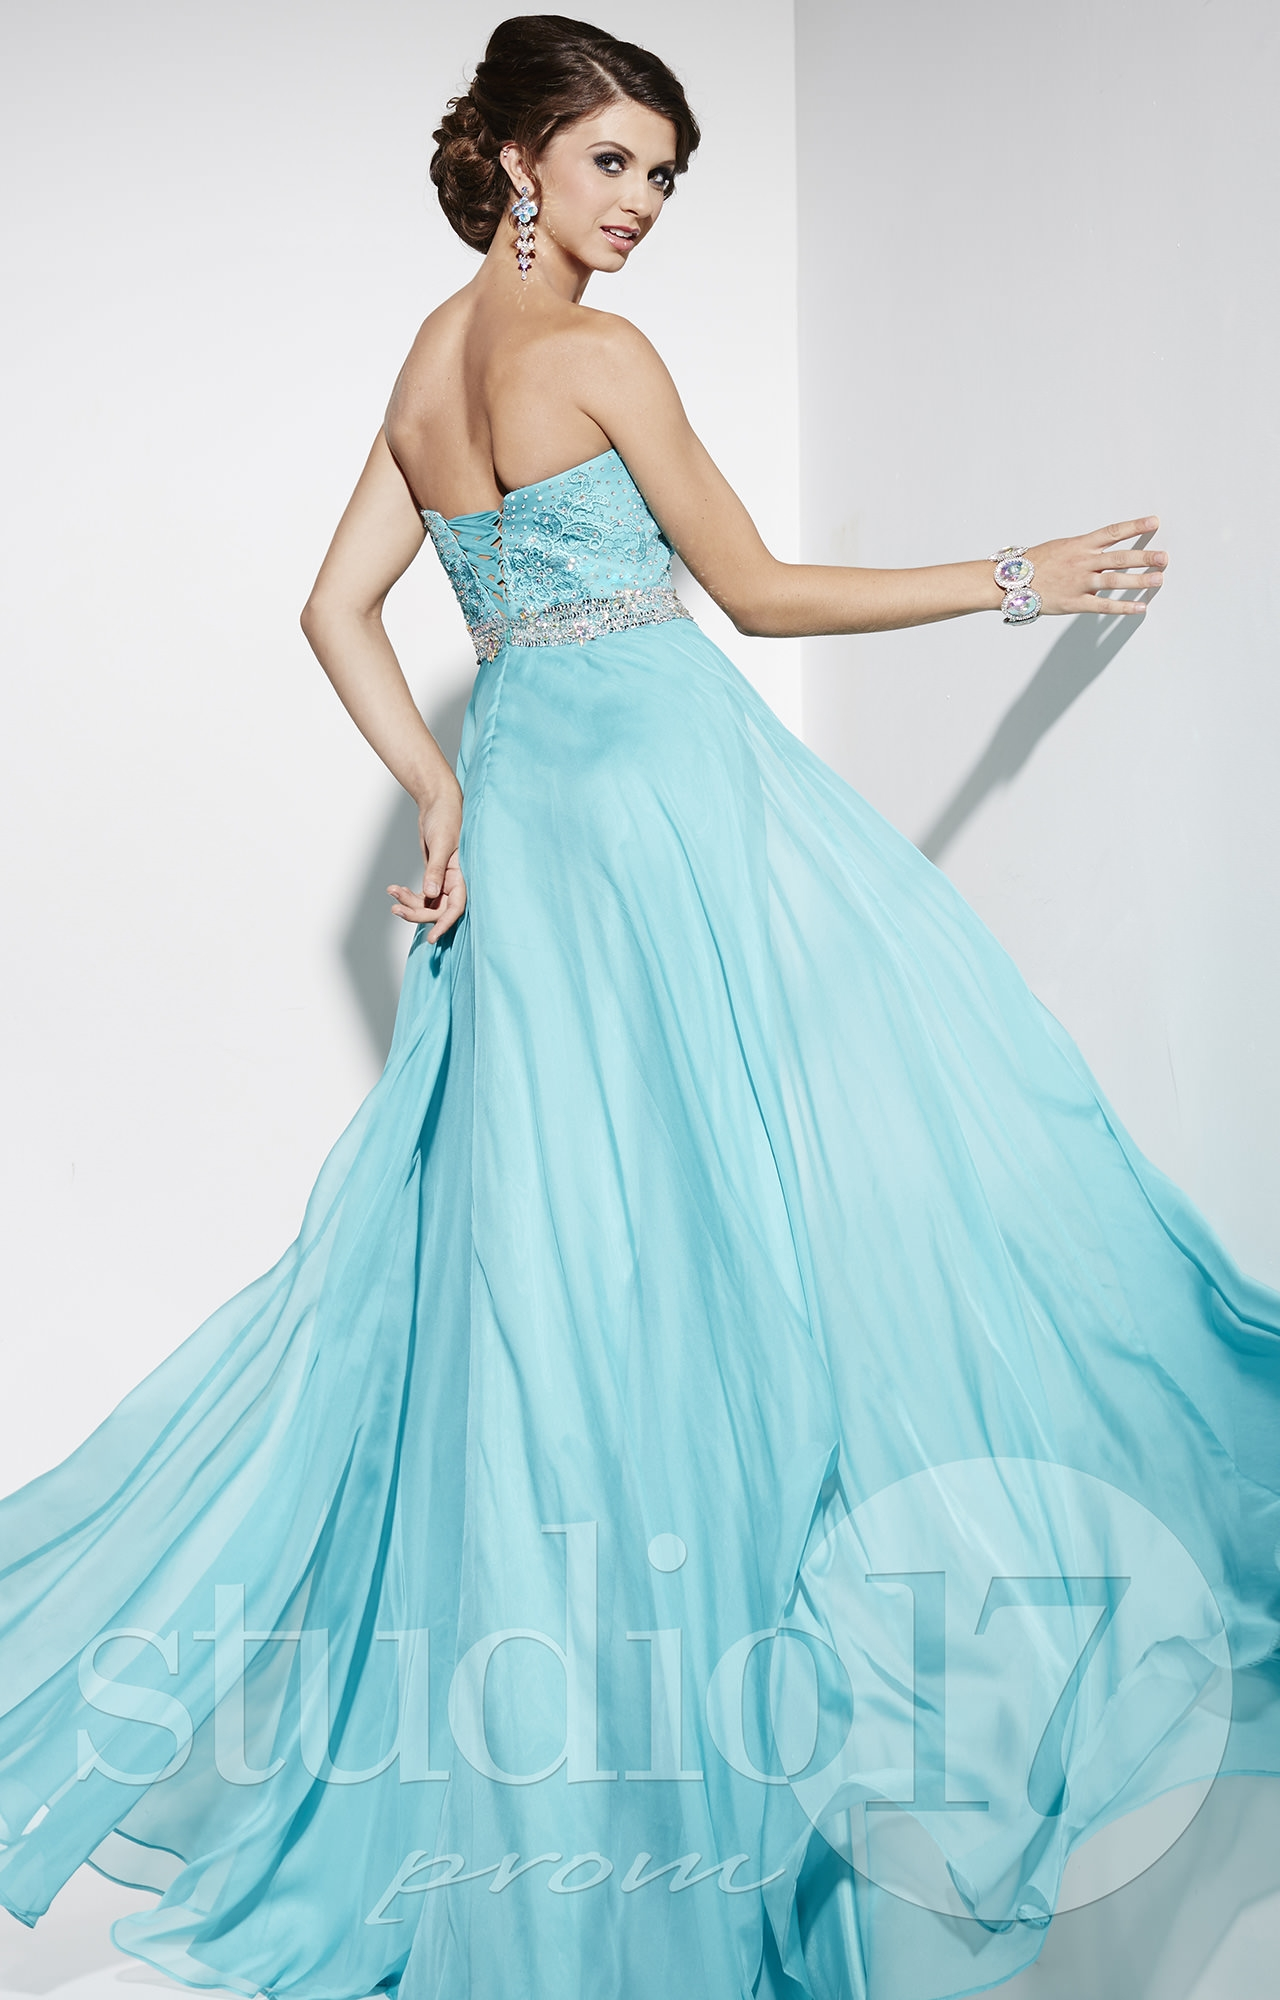 Studio 17 12549 - Effortlessly Chic Chiffon Gown Prom Dress